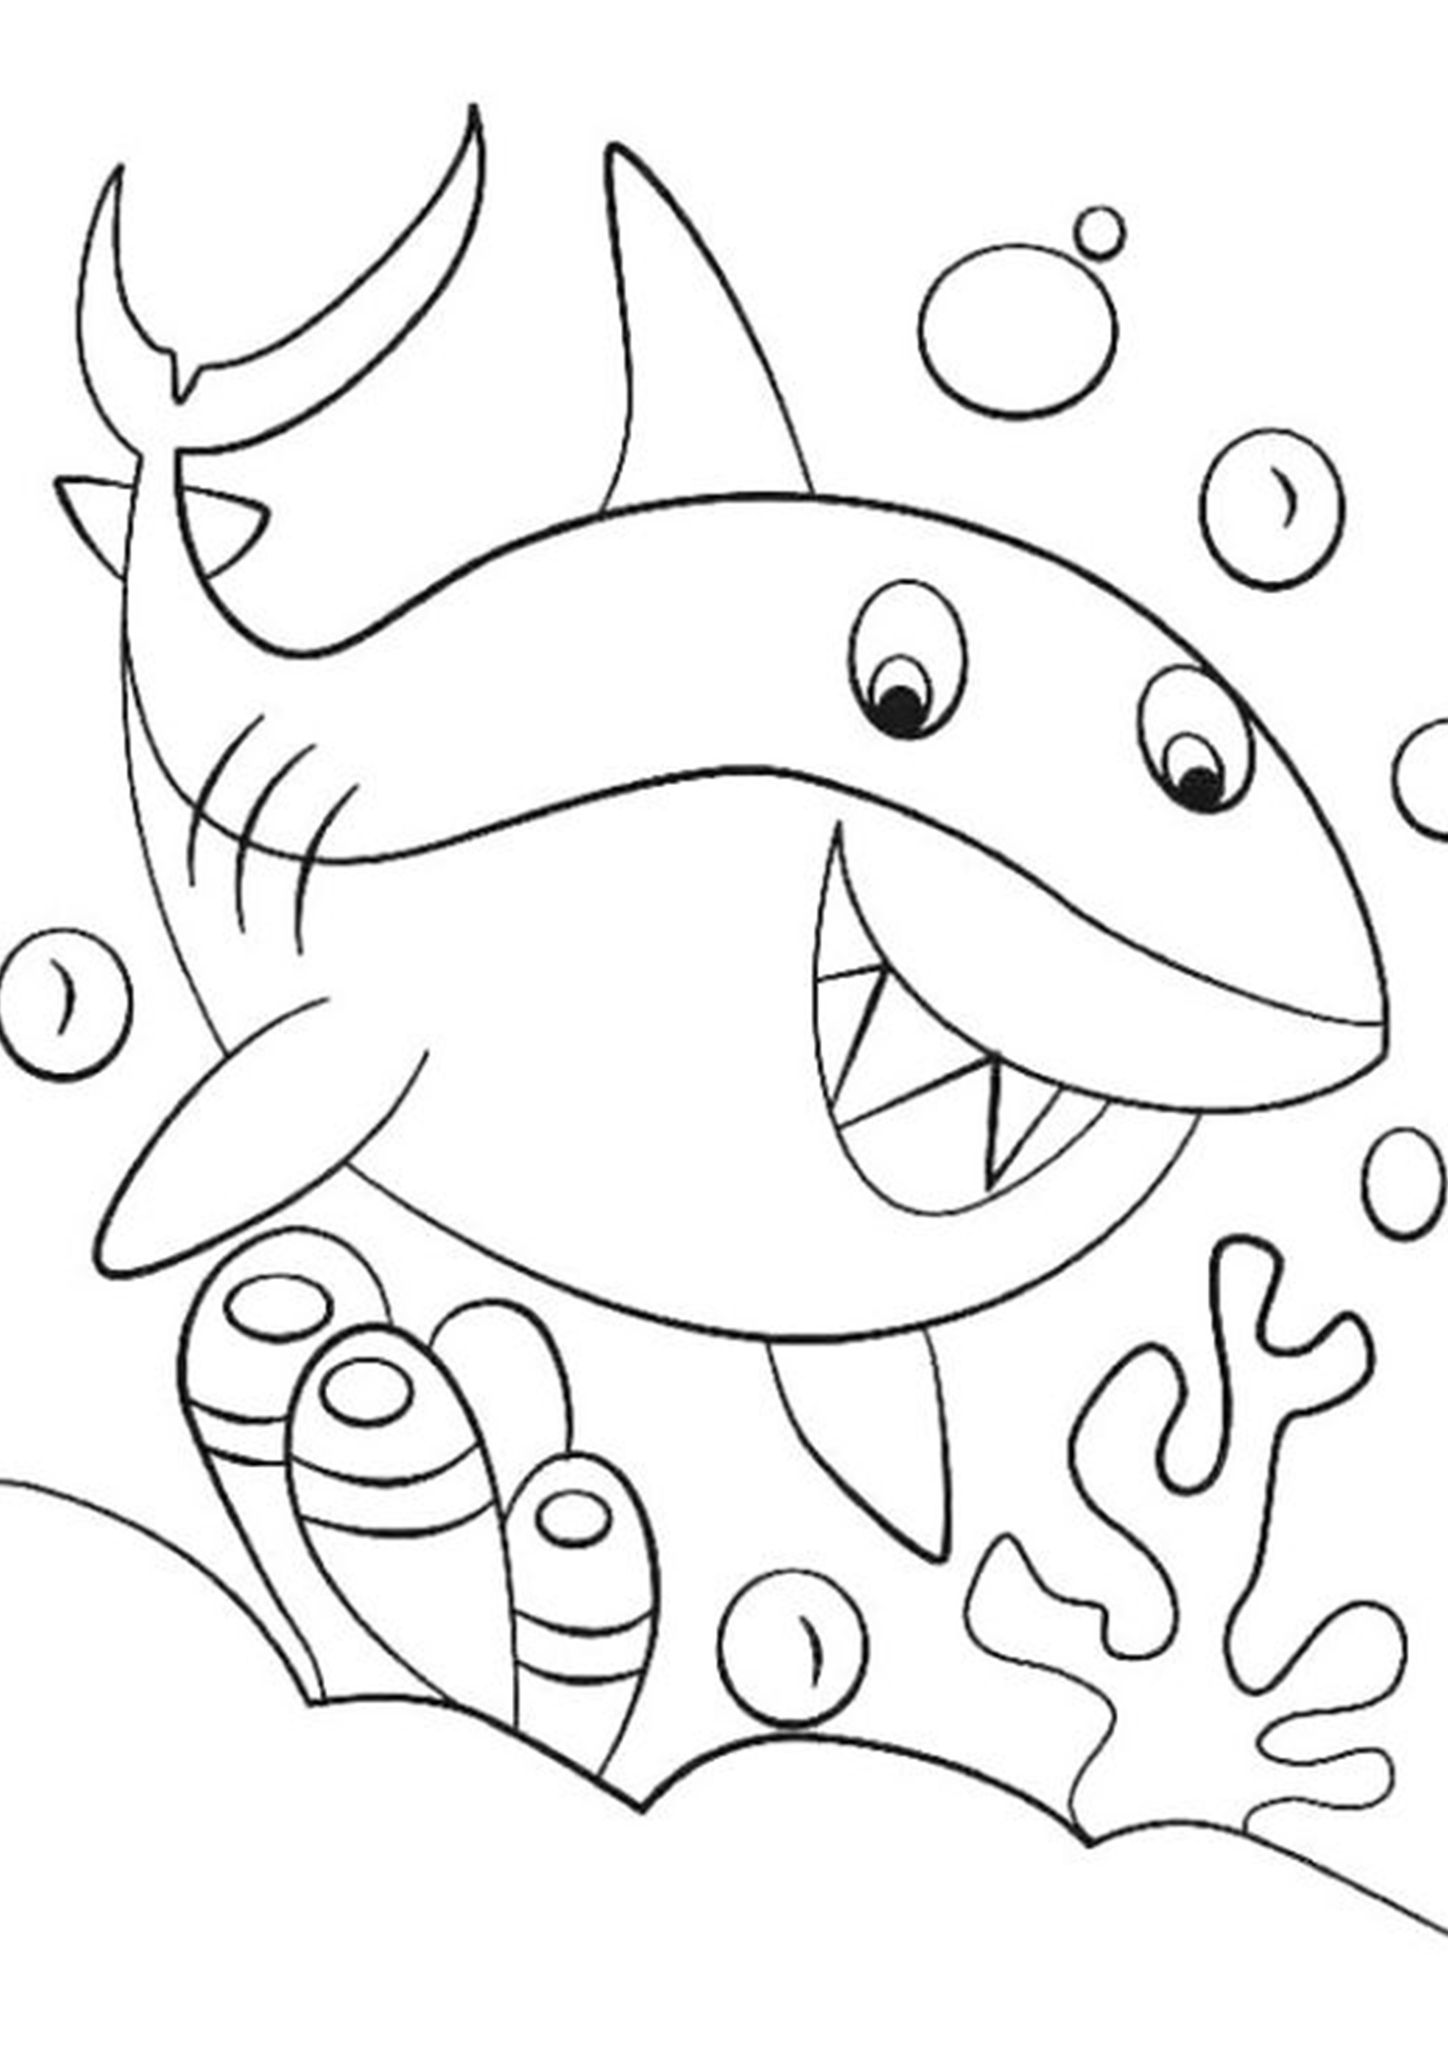 Free Easy To Print Shark Coloring Pages Shark Coloring Pages Coloring Pages For Boys Baby Coloring Pages